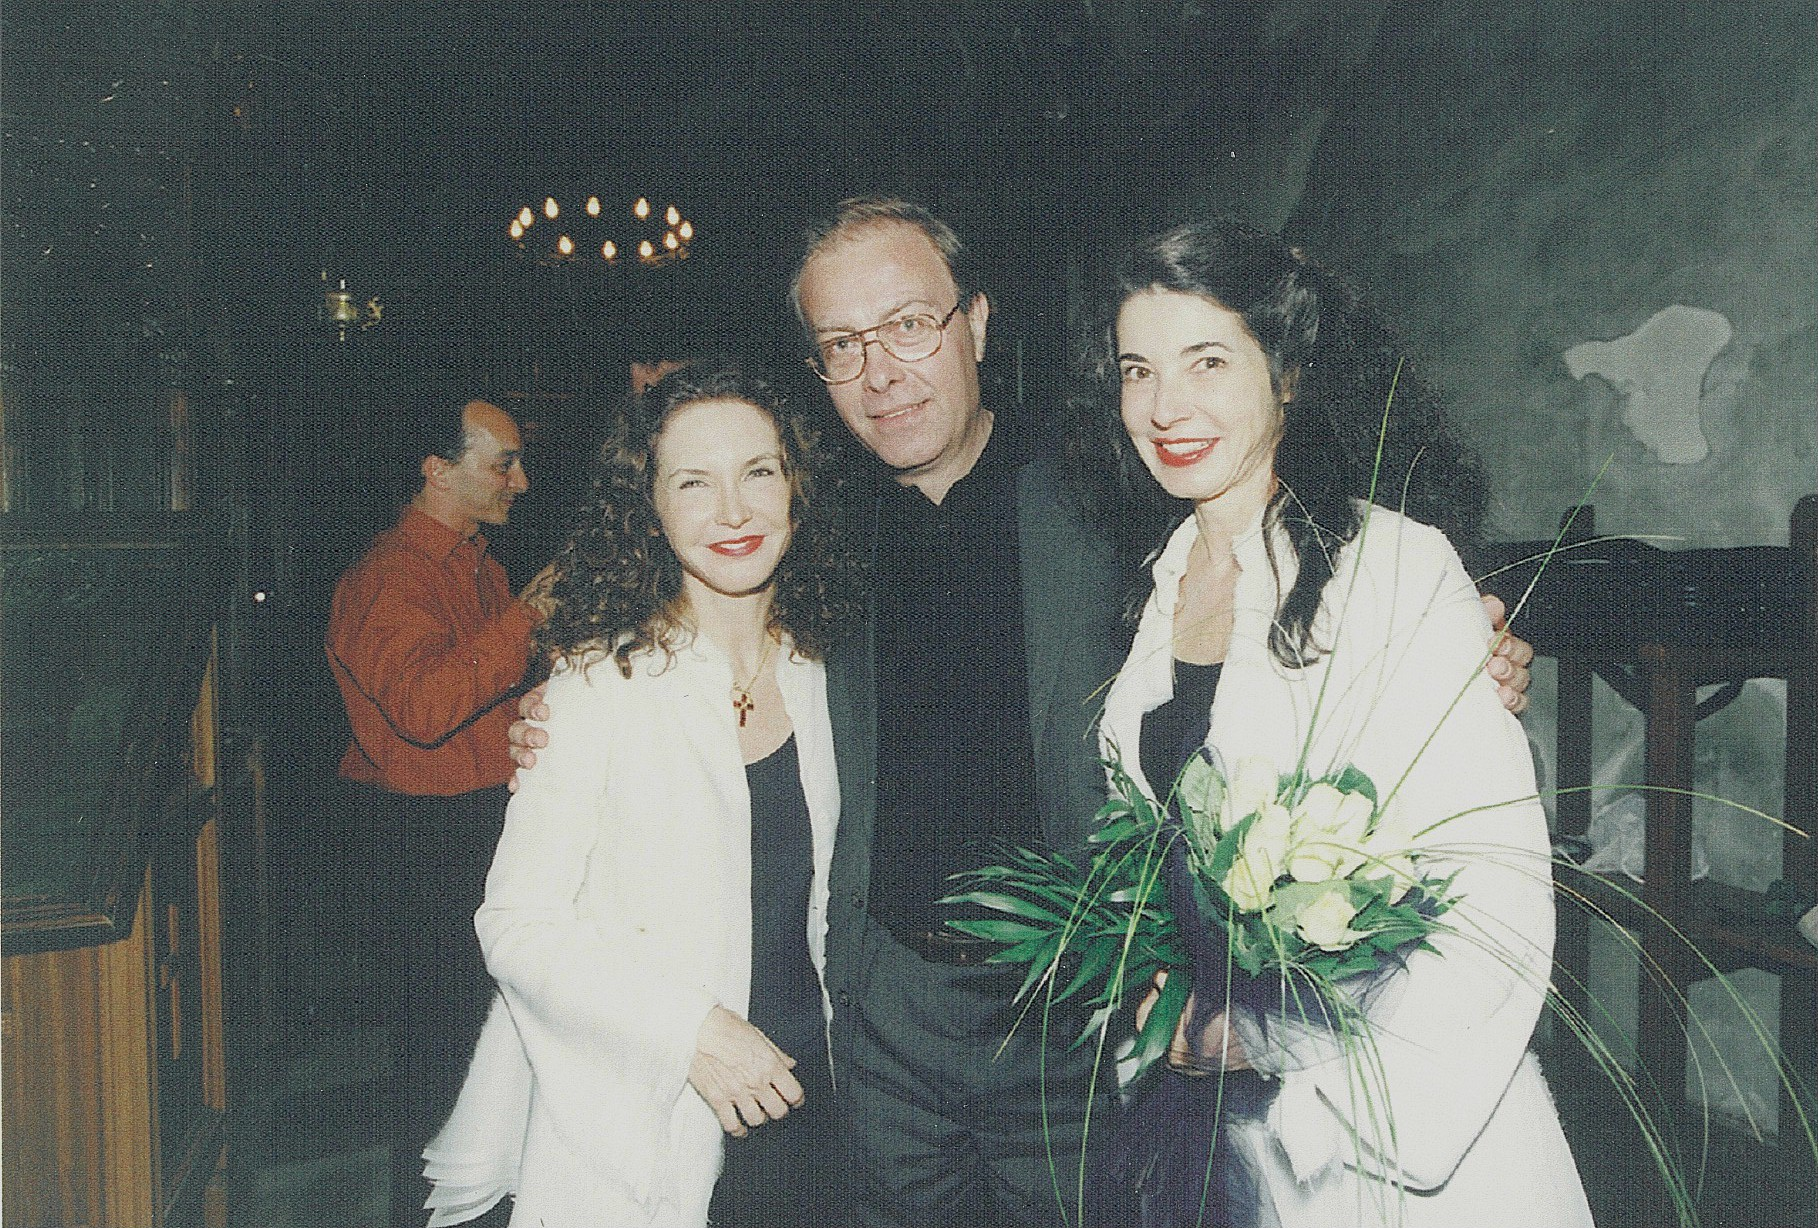 Vakarelis with Katia and Marielle Labeque